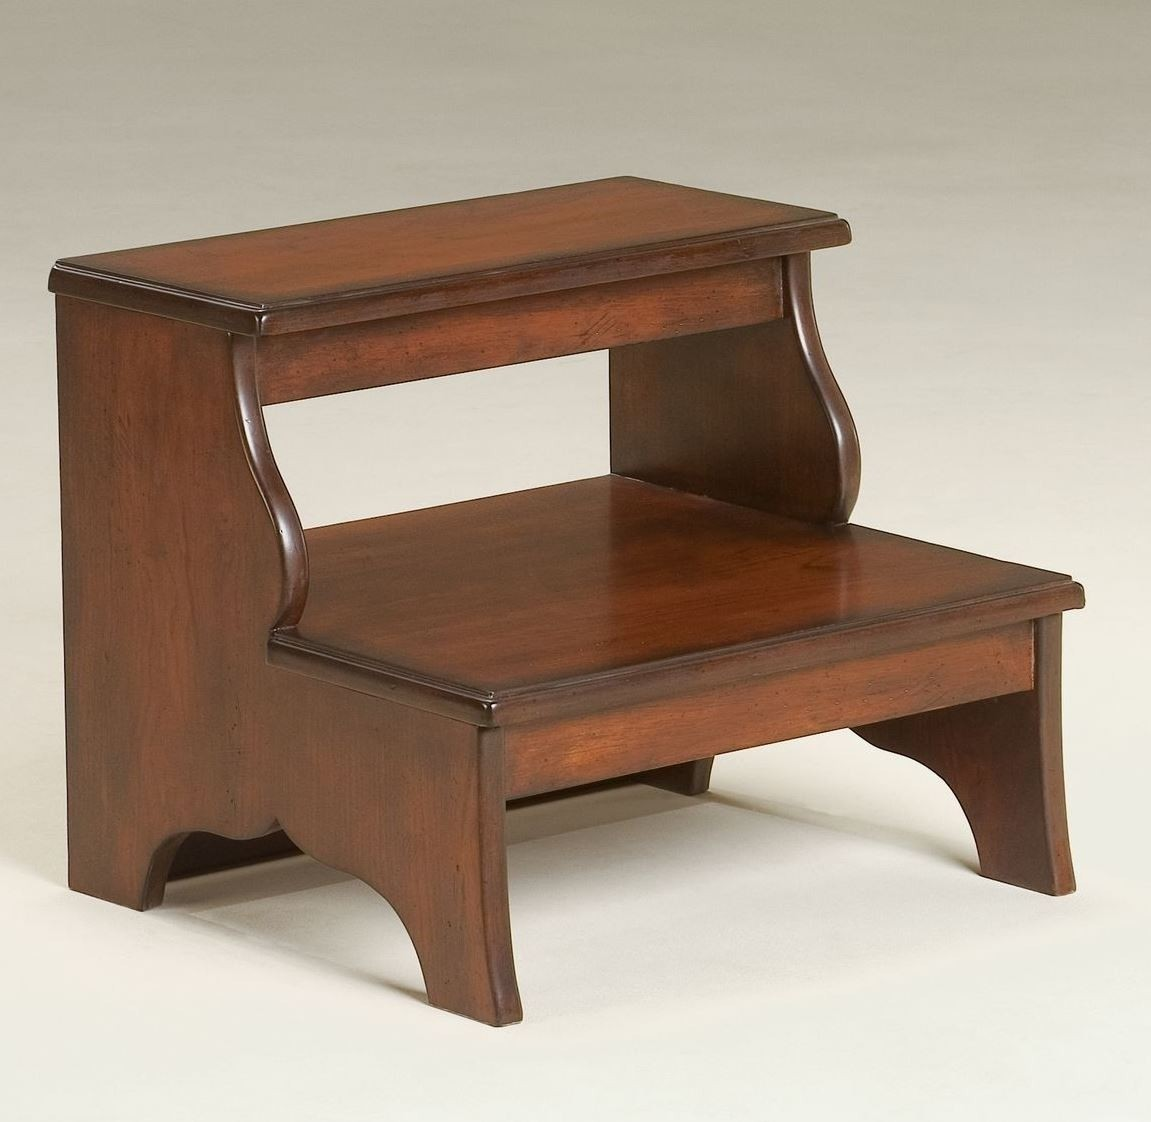 Charmant Rockingham Step Stool   Two Step Bed Step   Accent Furniture